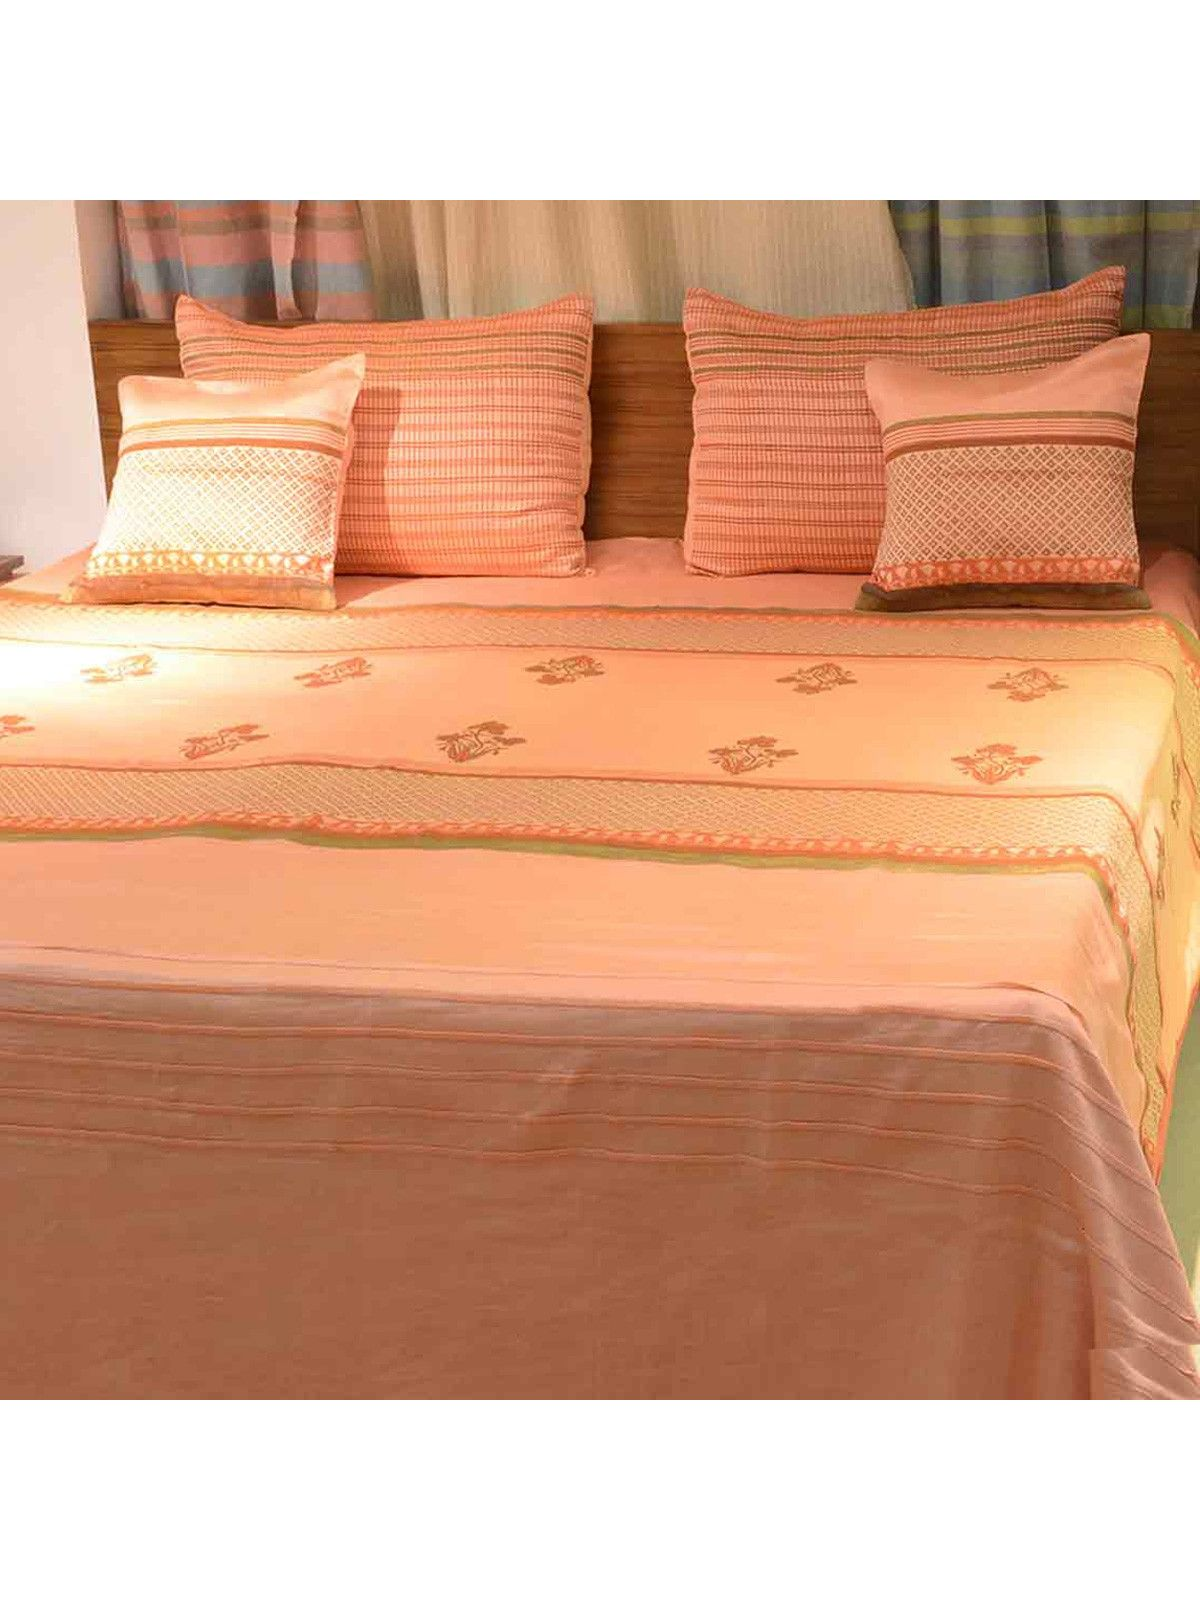 Orange Block Printed Chanderi Bedcover Set